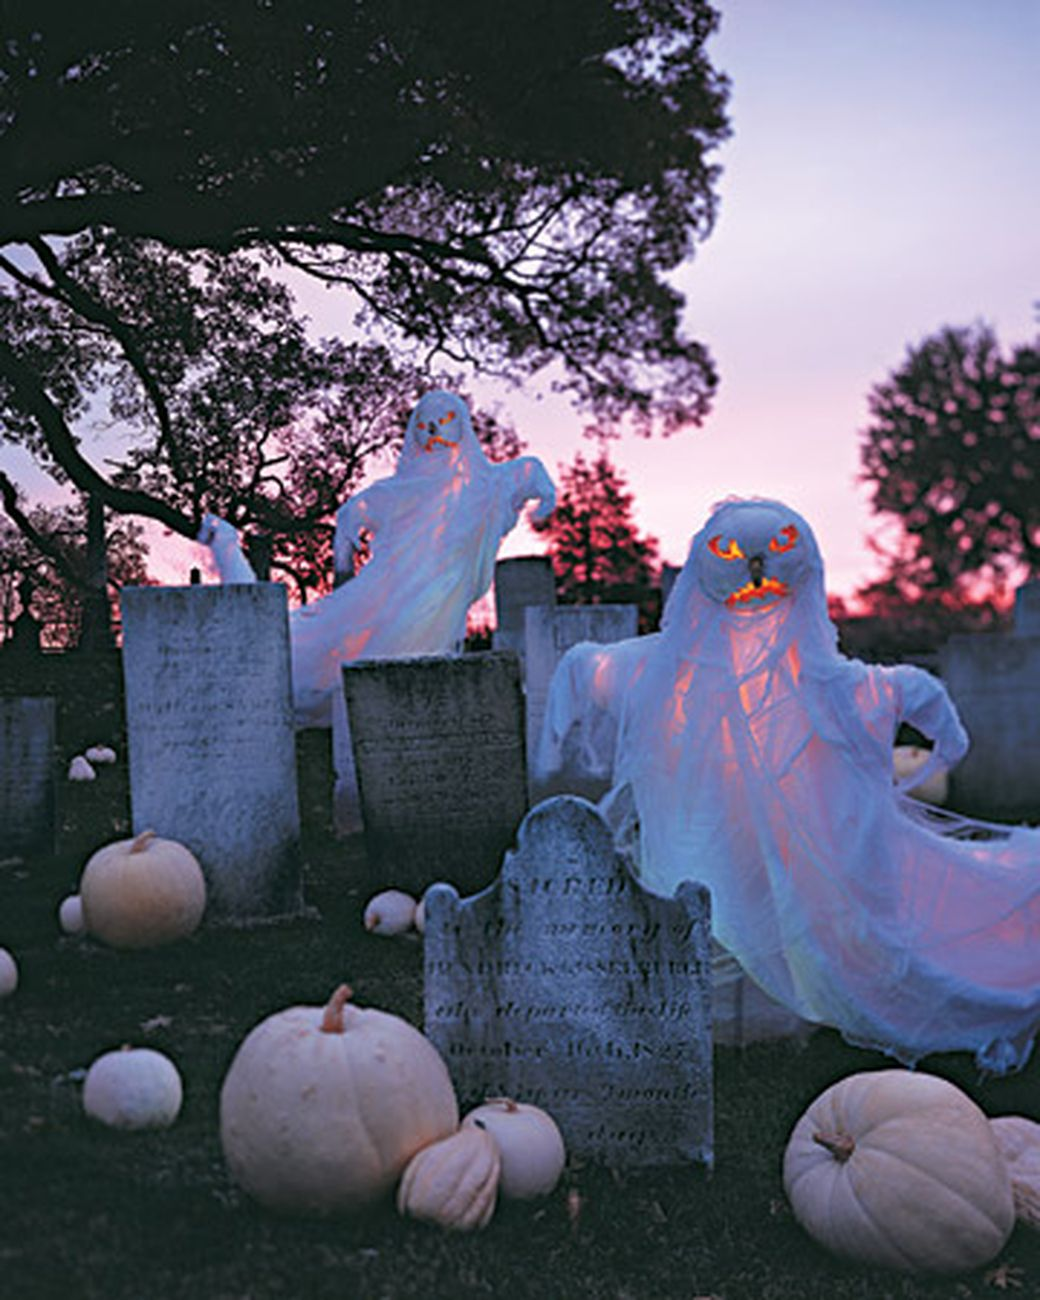 11 best images about diy on Pinterest Lip balm, Martha stewart and - Halloween Ghost Decorations